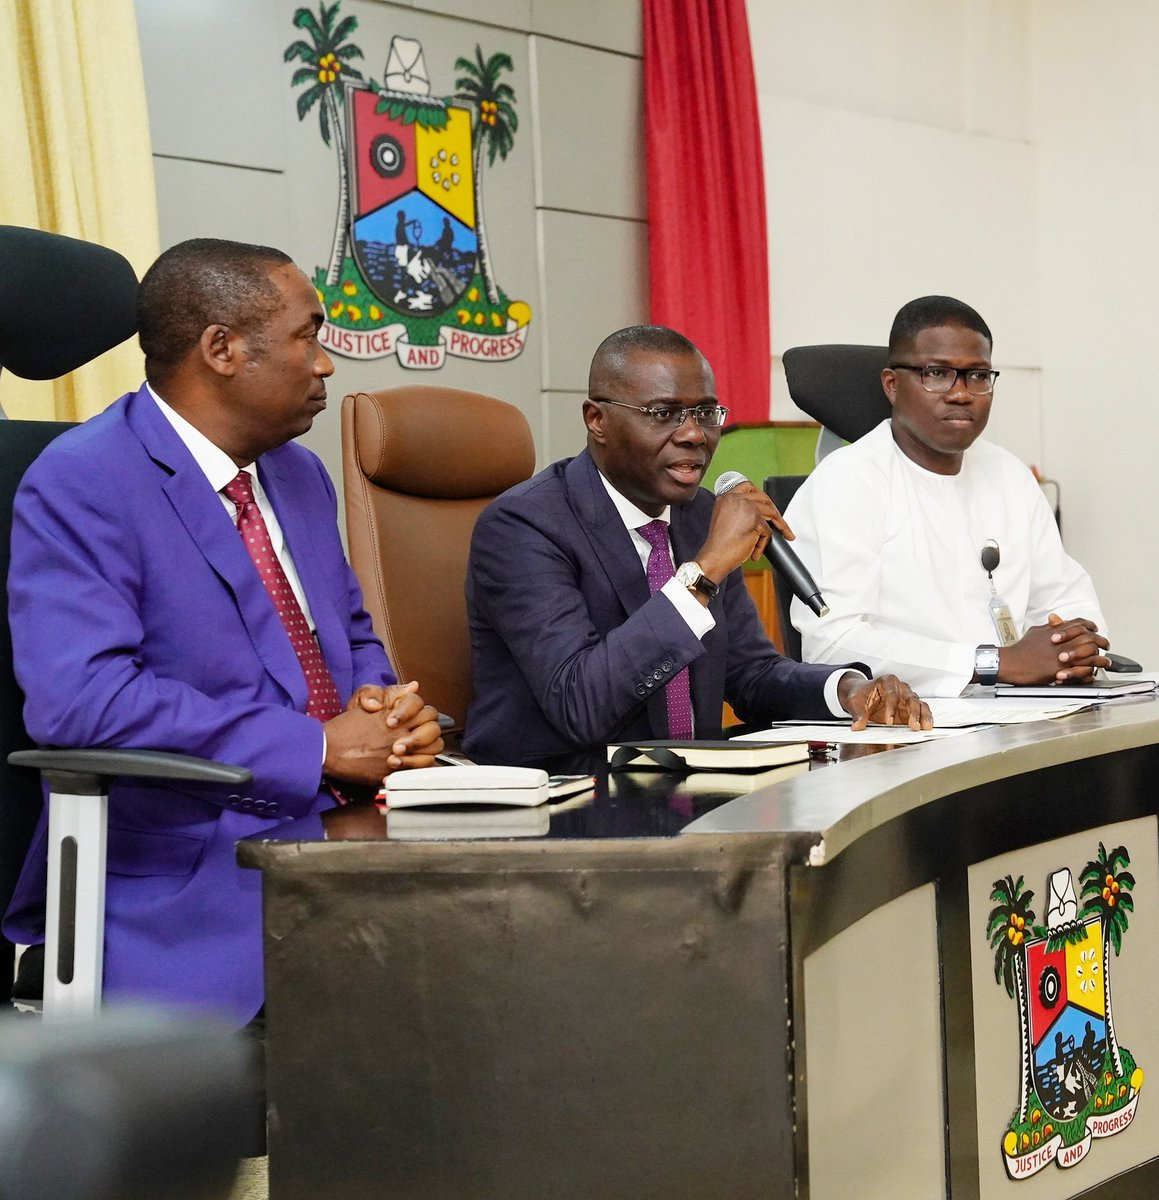 D70d5psX4AET HQ - Photos: Lagos State Governor, Babajide Sanwo-olu, Shares Details Of The Two Things He Did On His First Day At Work